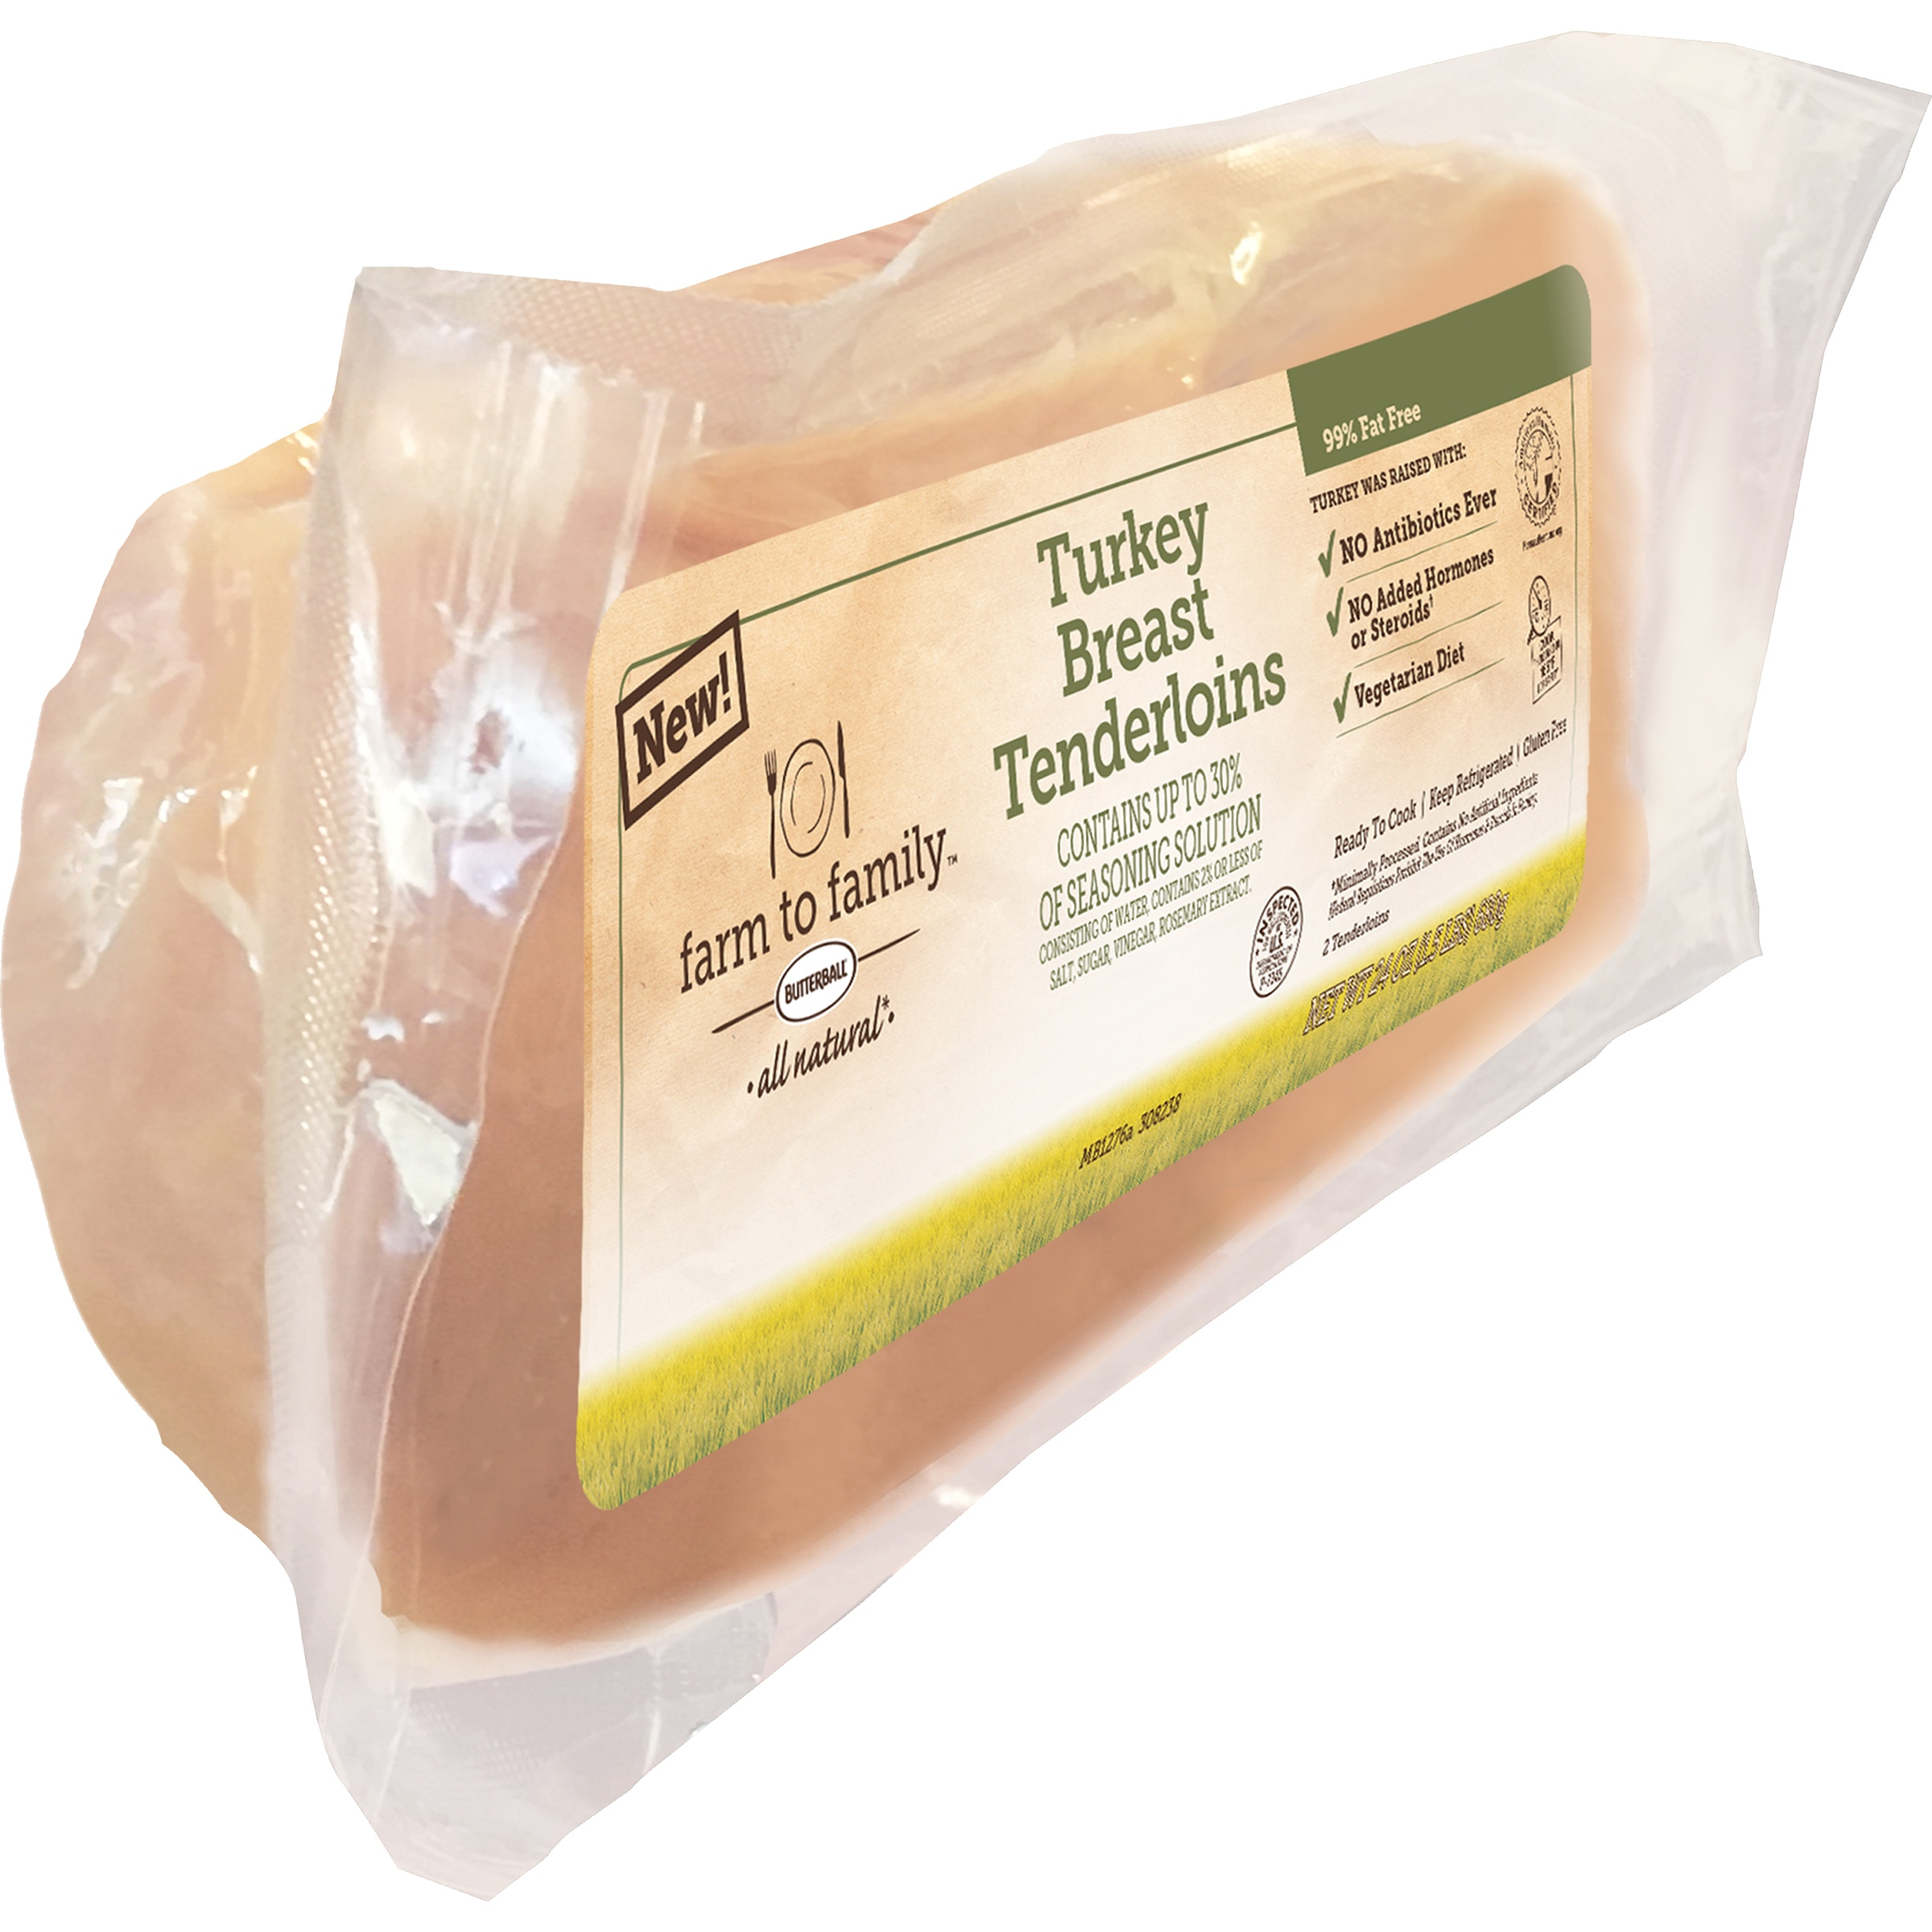 Butterball® Farm to Family™ Turkey Breast Tenderloins 24 oz. Pack